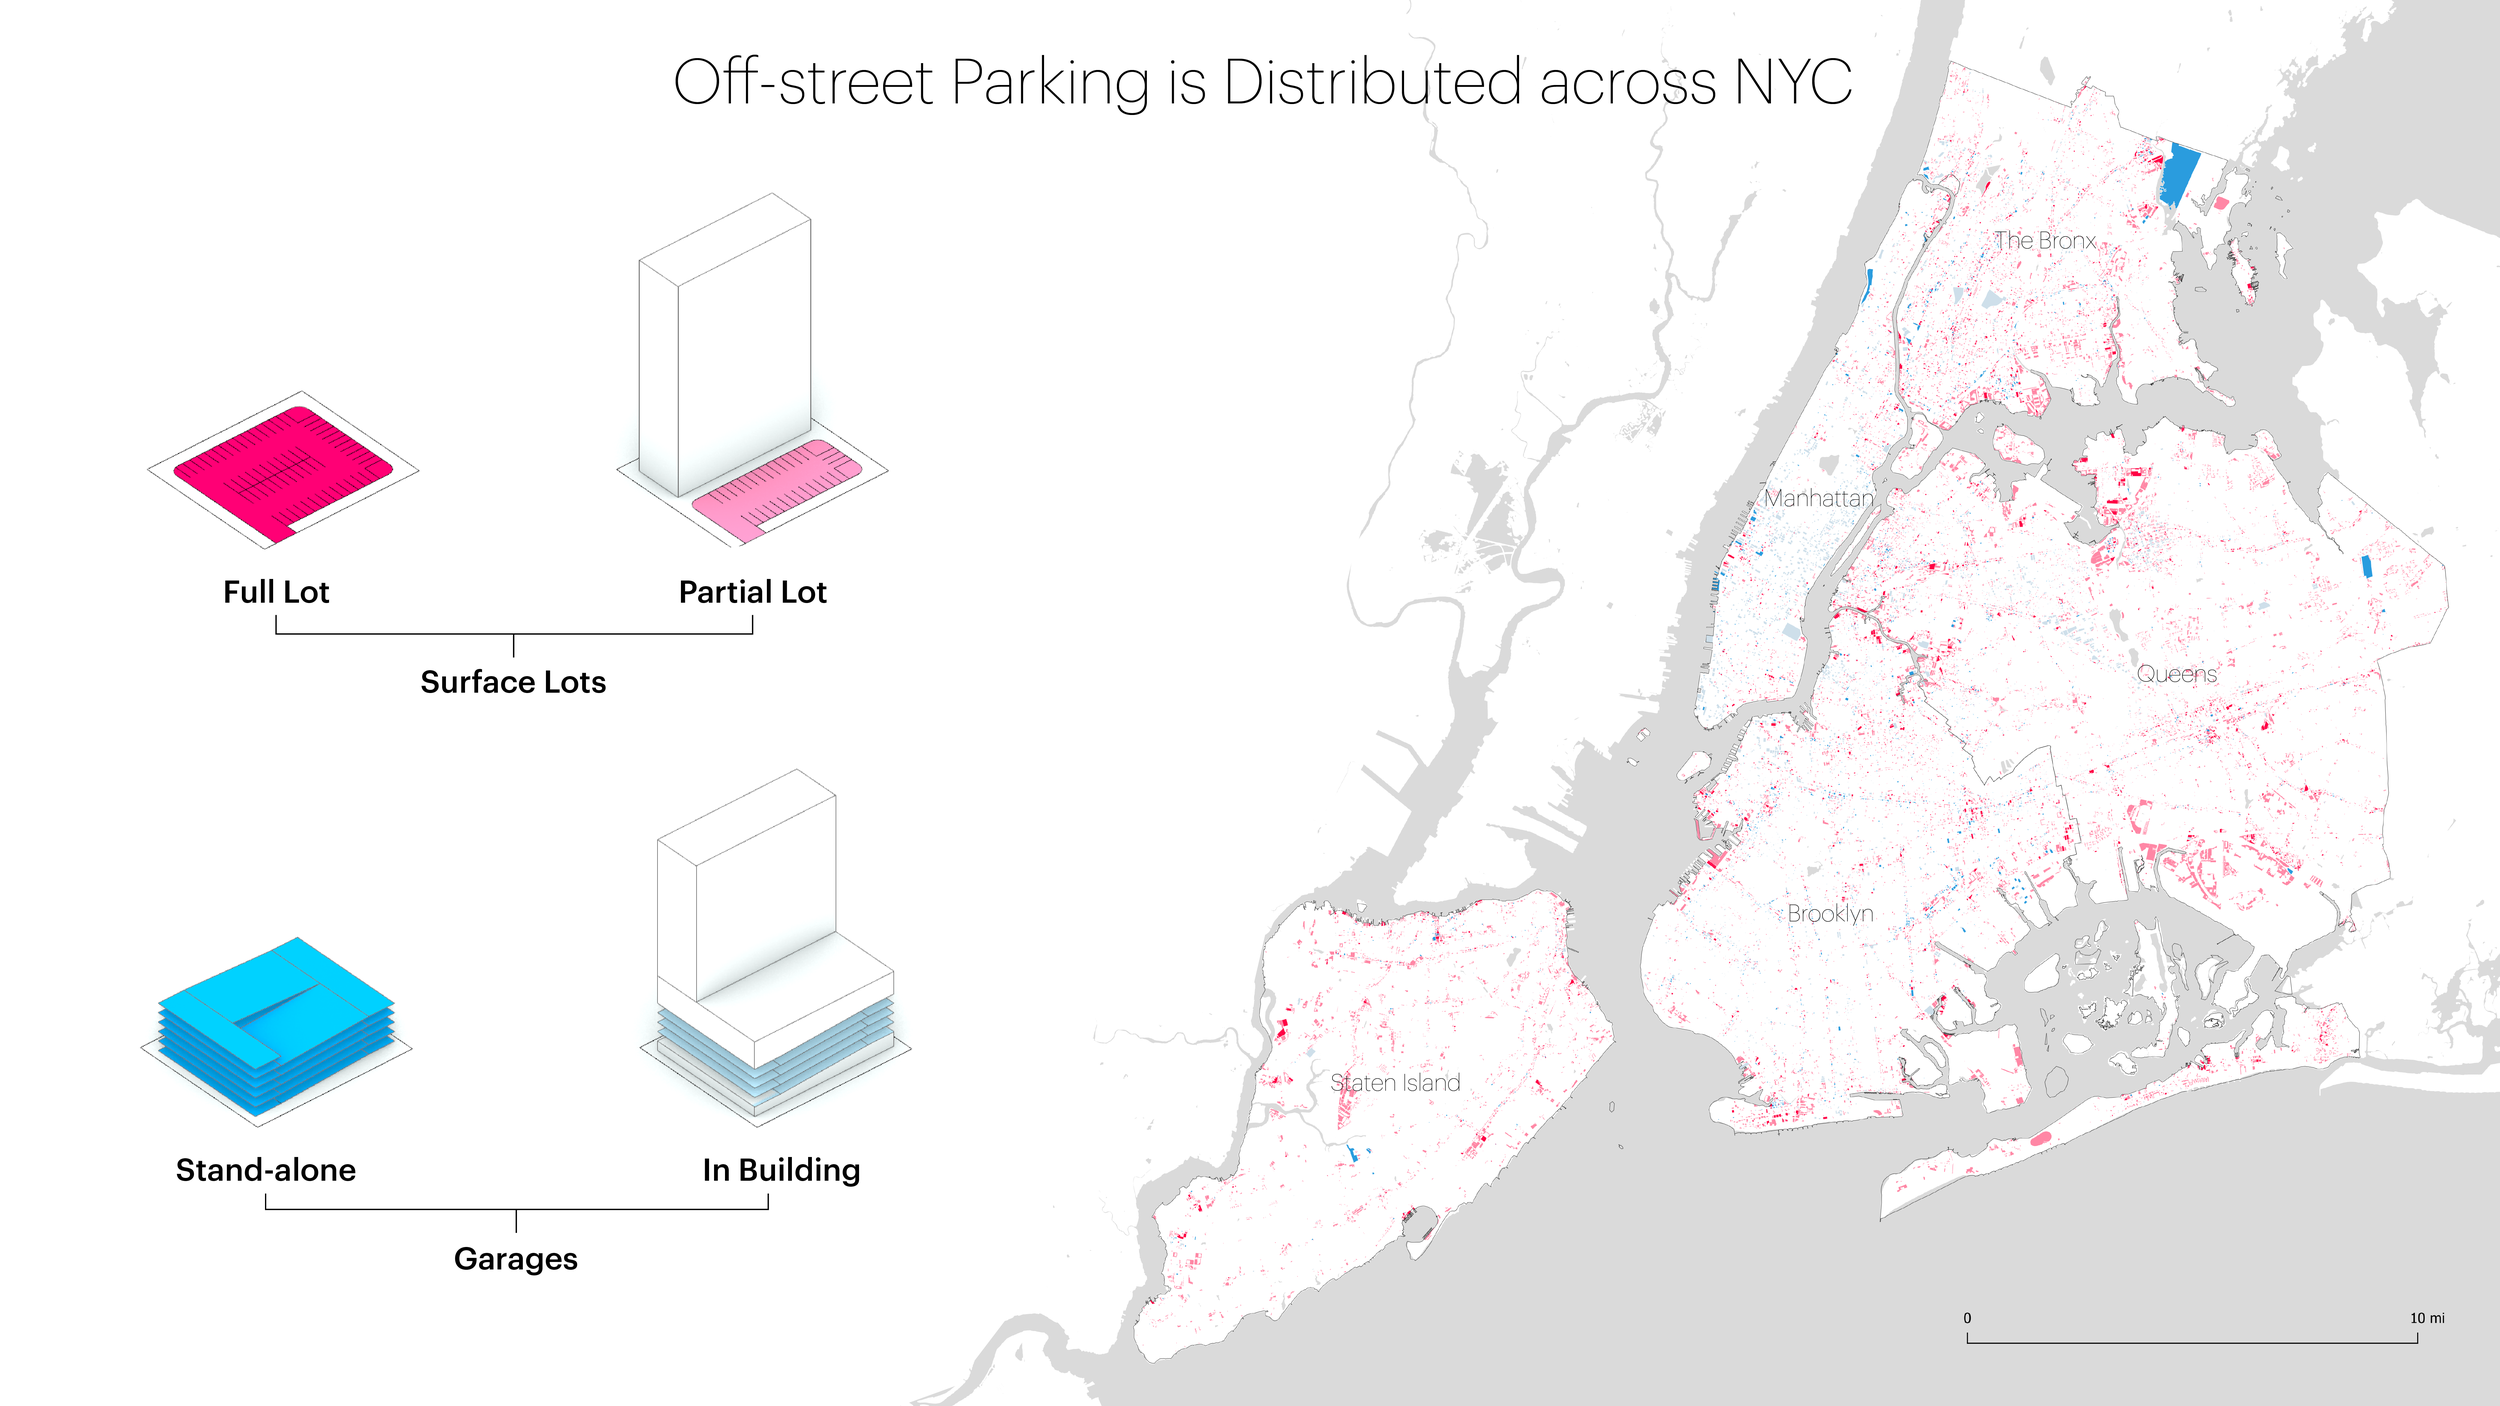 We categorized all of NYC's off-street parking into 4 types.